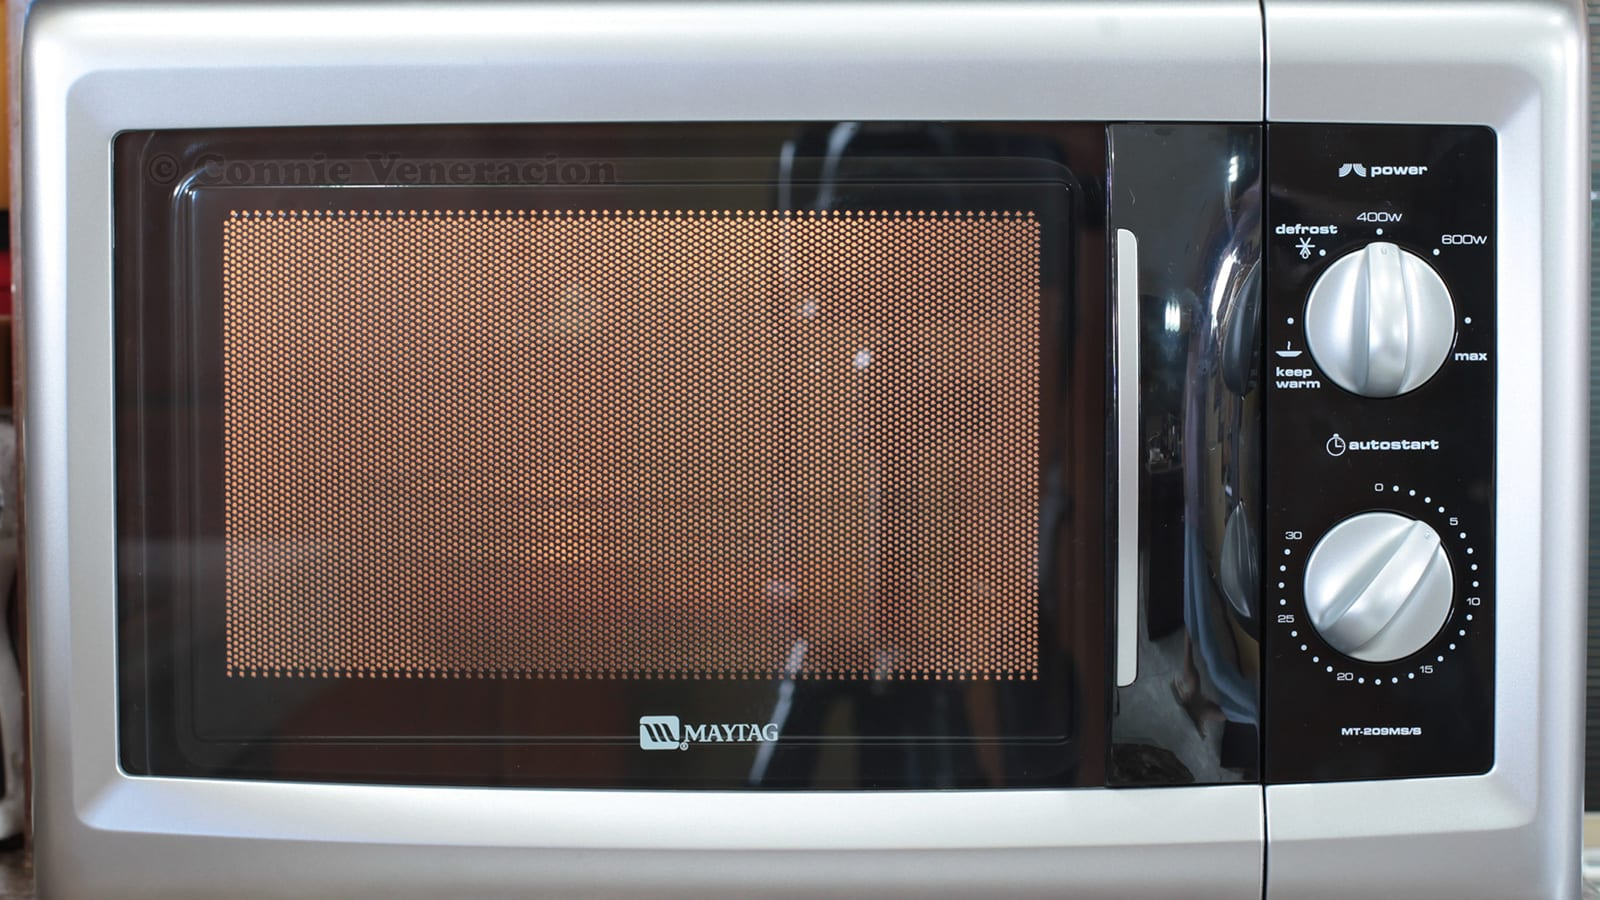 Does microwave cooking result in the healthiest meals?   casaveneracion.com